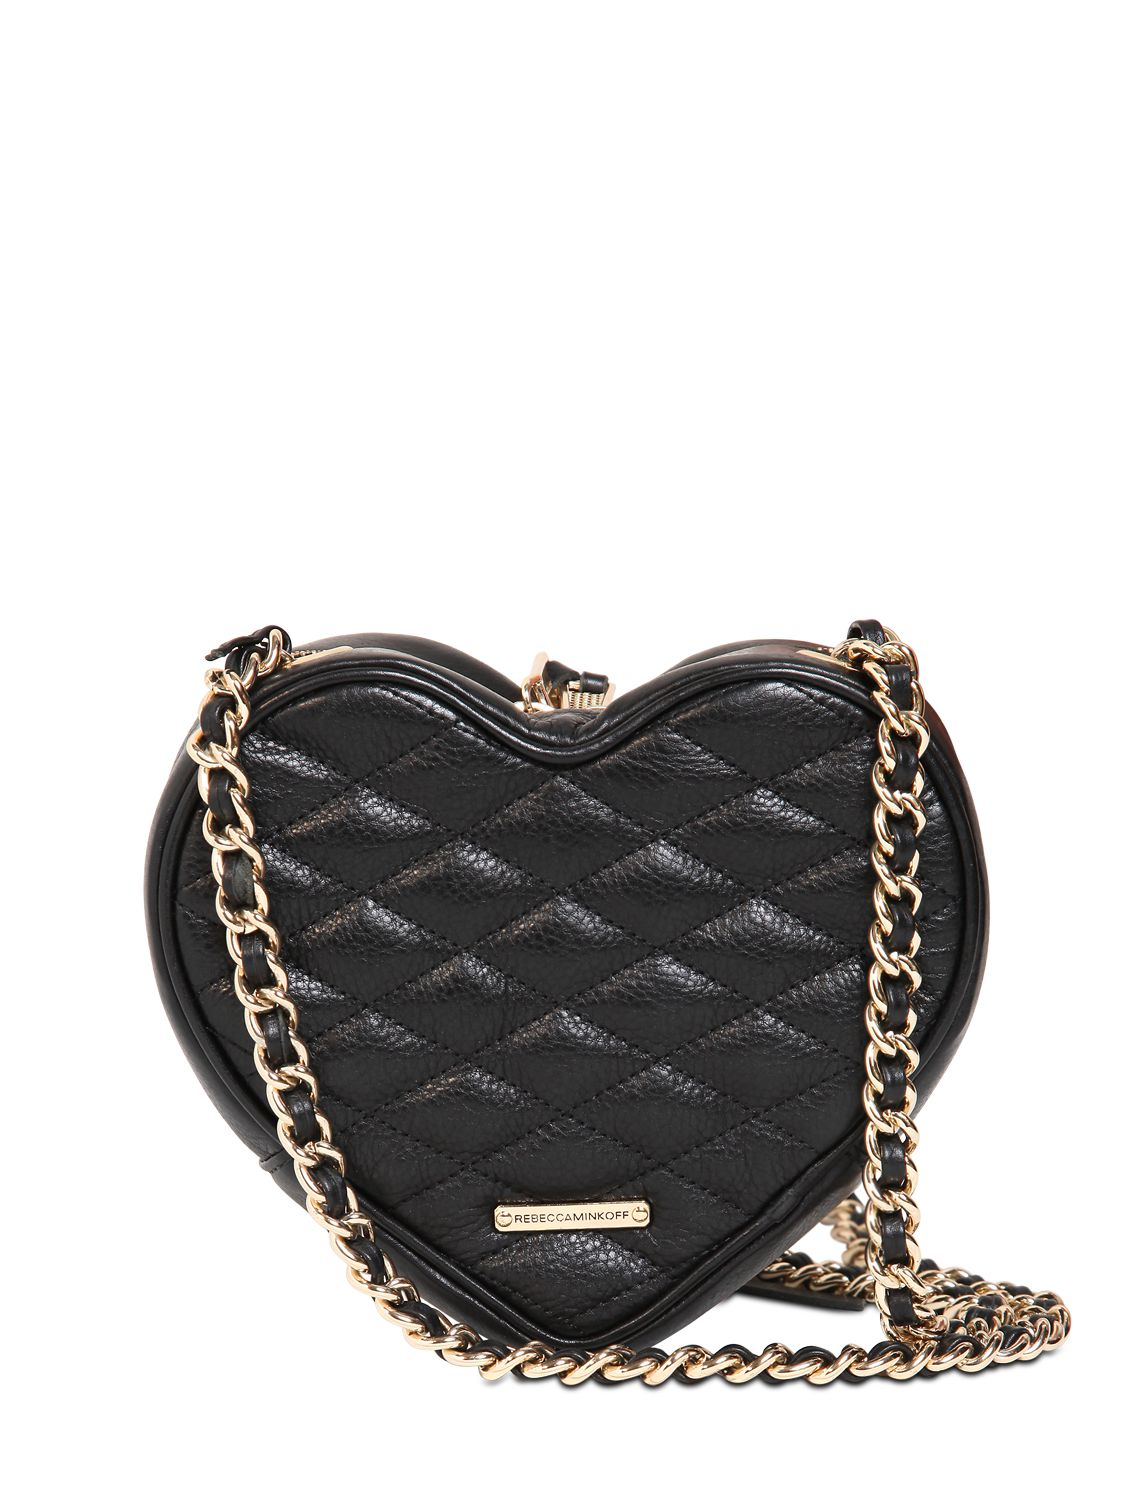 Rebecca Minkoff Heart Quilted Leather Shoulder Bag In